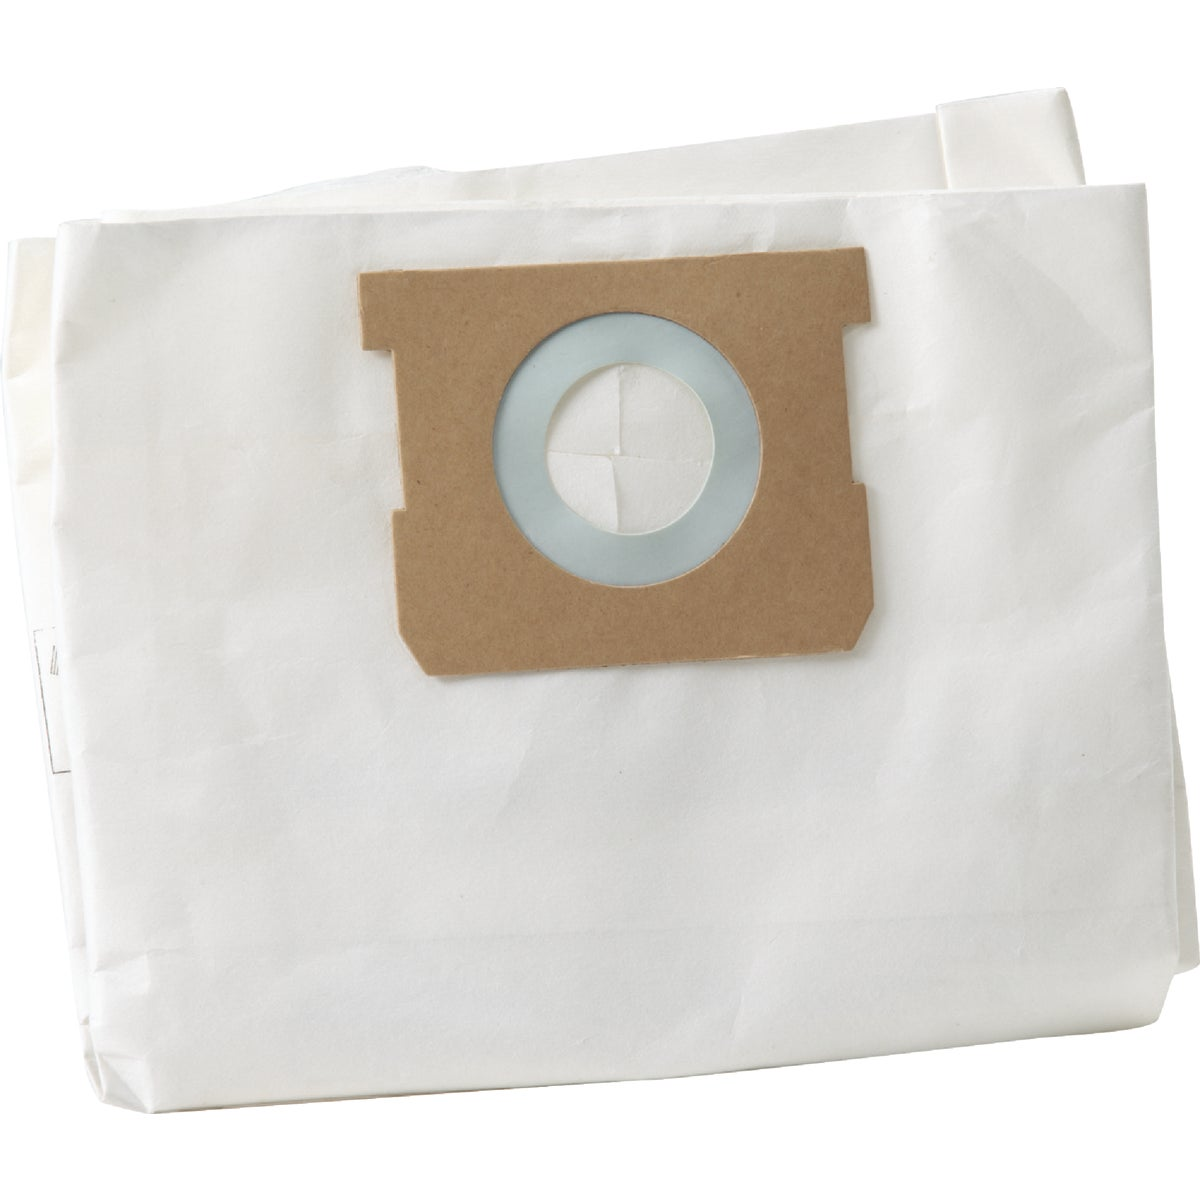 12-16GAL FILTER BAG - VDBL.CL by Channellock®